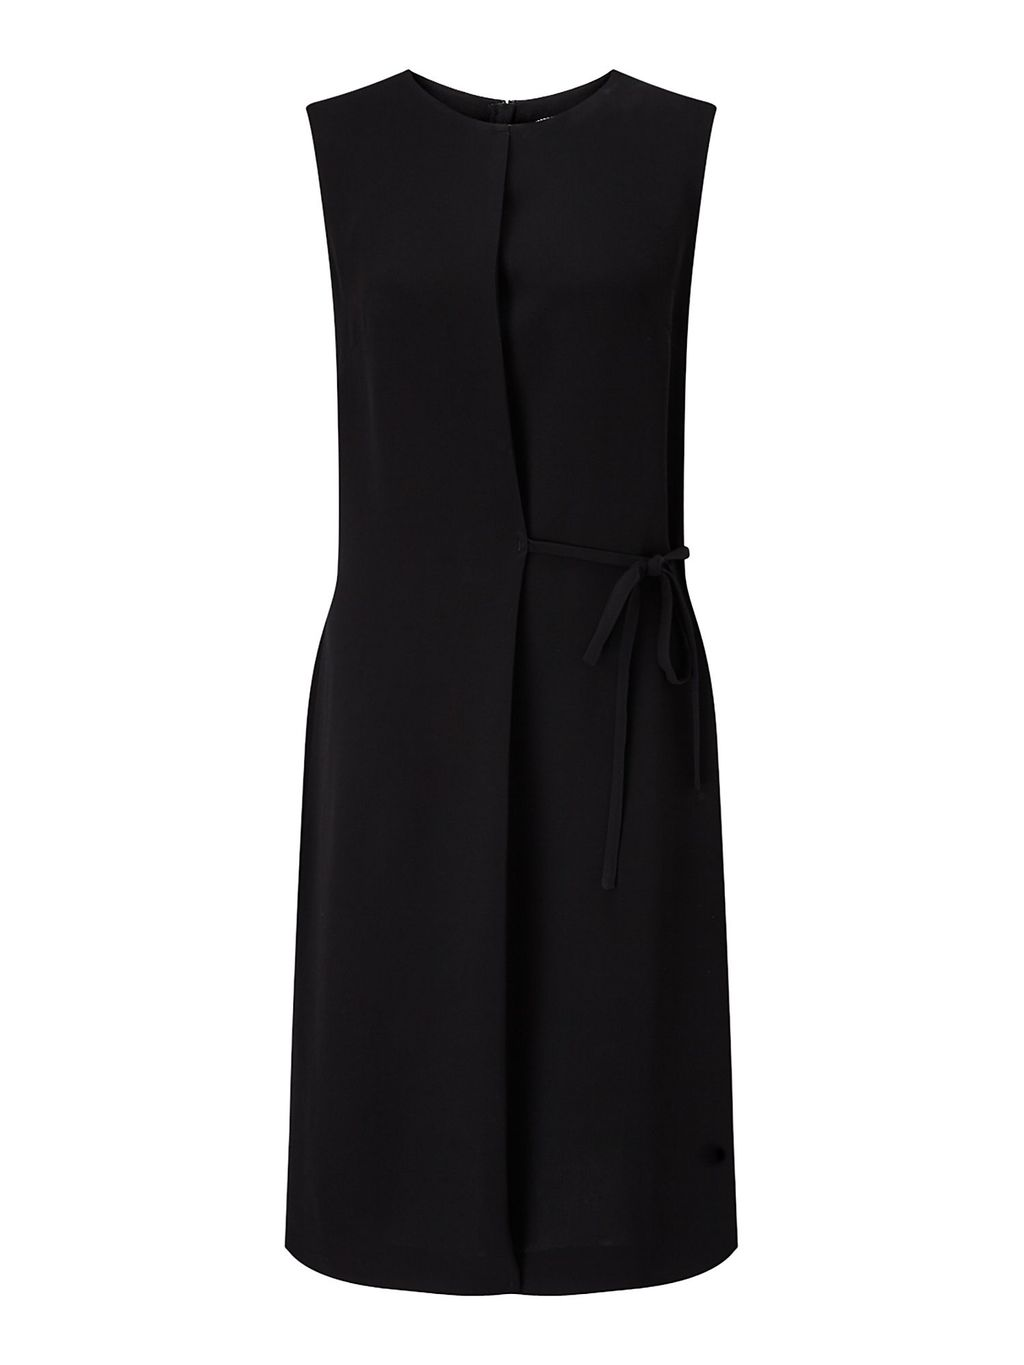 Tie Waist Dress, Black - style: shift; pattern: plain; sleeve style: sleeveless; predominant colour: black; occasions: evening; length: on the knee; fit: body skimming; fibres: viscose/rayon - 100%; neckline: crew; sleeve length: sleeveless; pattern type: fabric; texture group: jersey - stretchy/drapey; season: a/w 2016; wardrobe: event